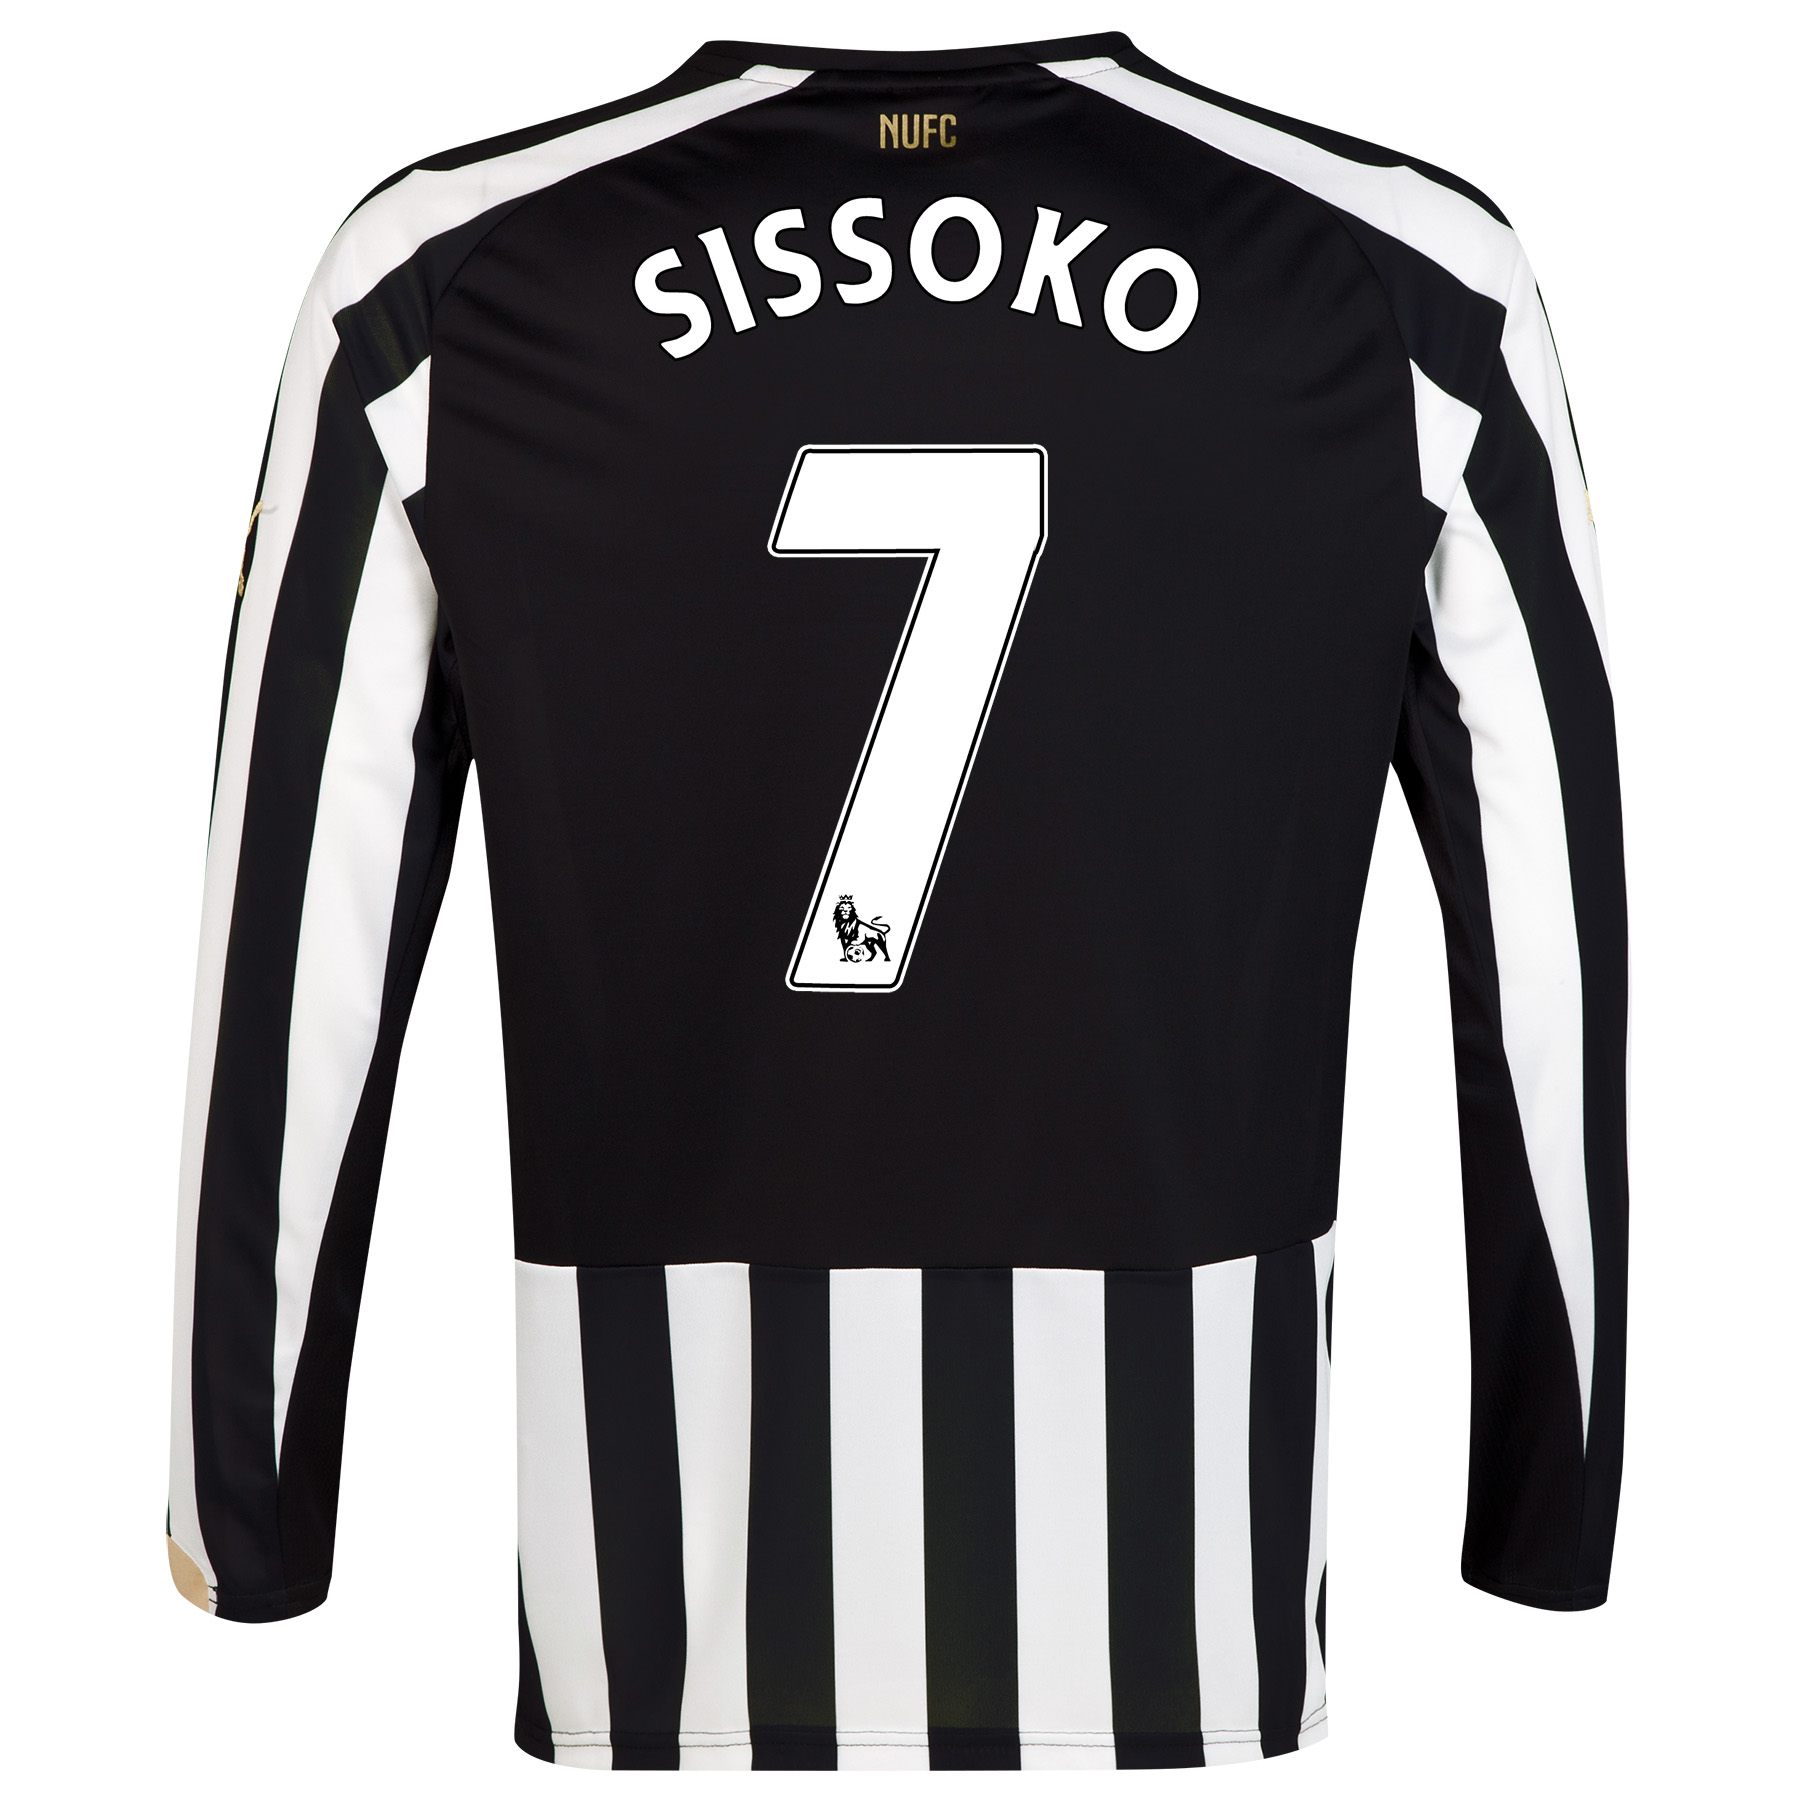 Newcastle United Home Shirt 2014/15 Long Sleeve with Sissoko 7 printing